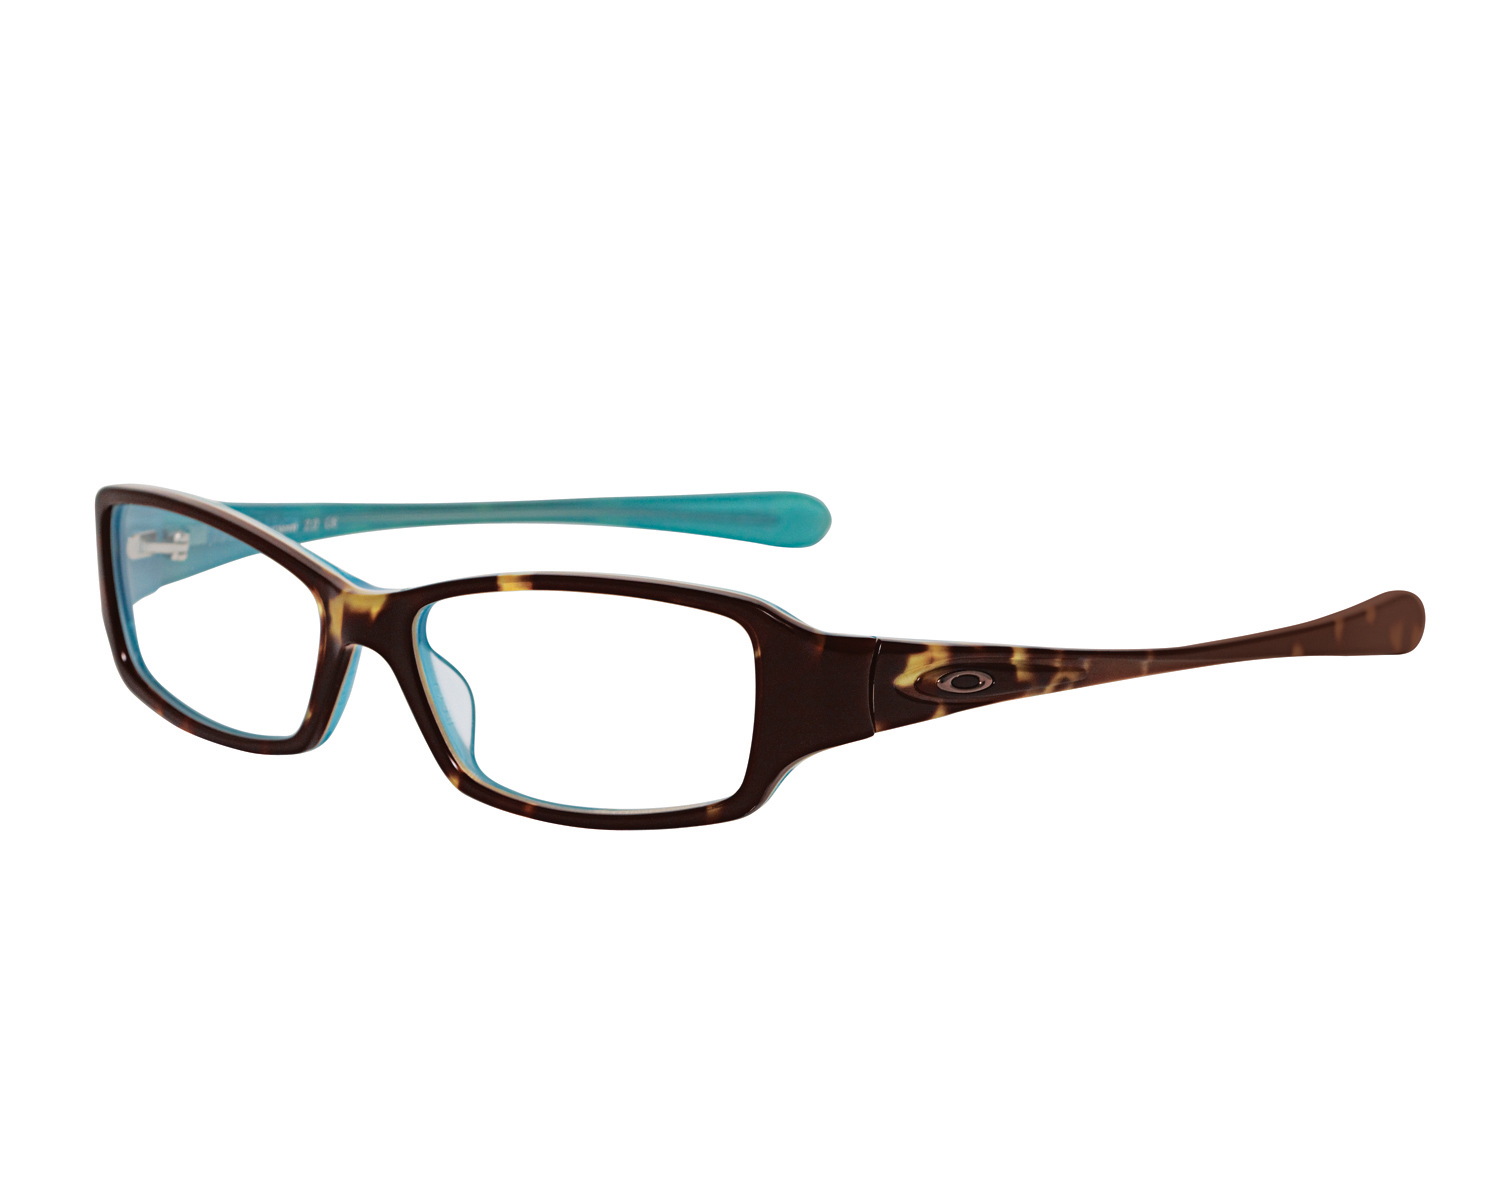 4de87be90f Oakley Womens Prescription Eyewear « Heritage Malta